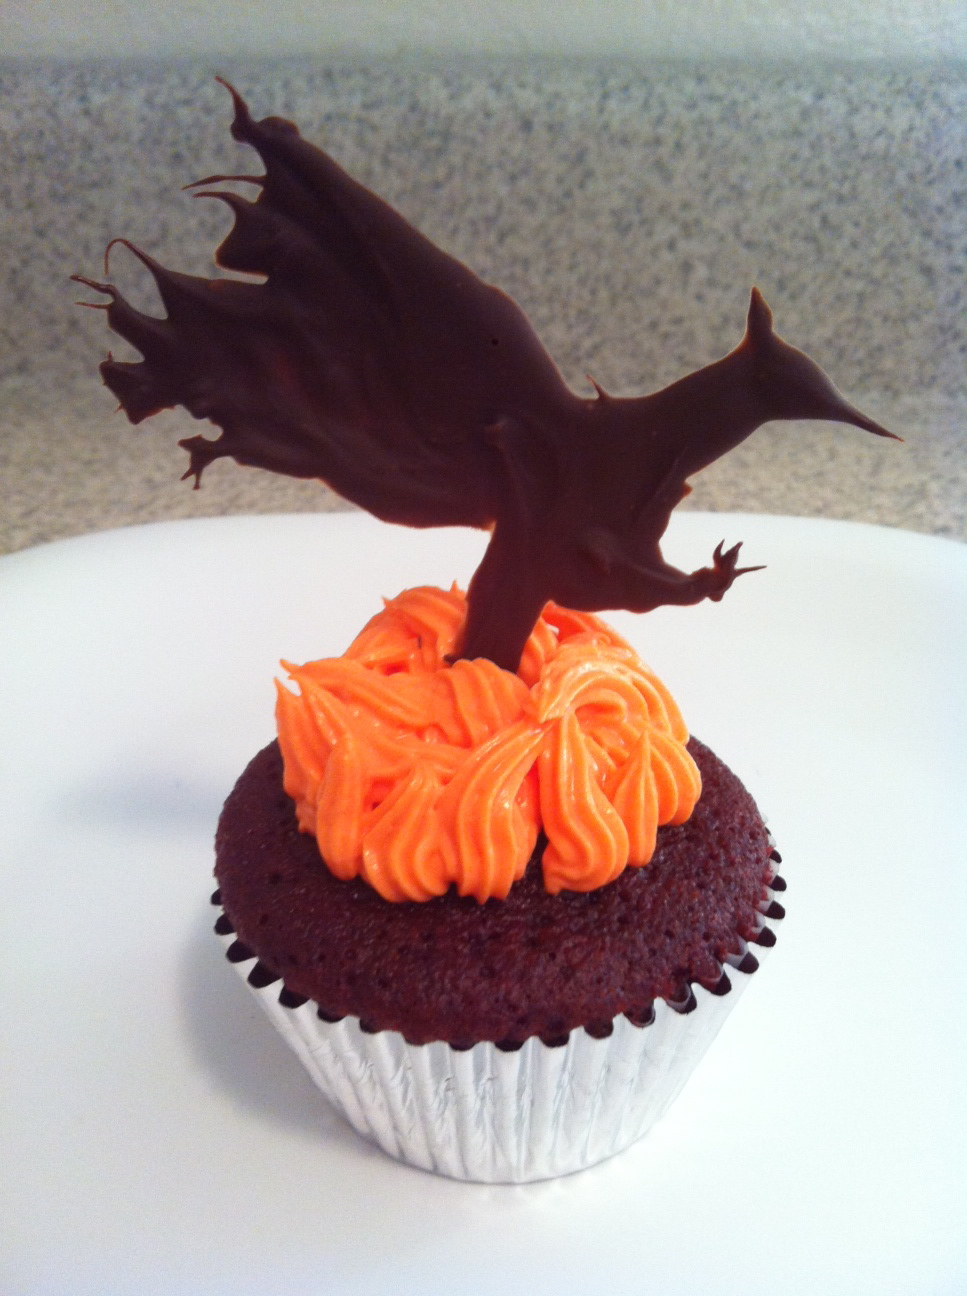 Picture of Katniss Spicy Red Velvet Hunger Games Cupcakes